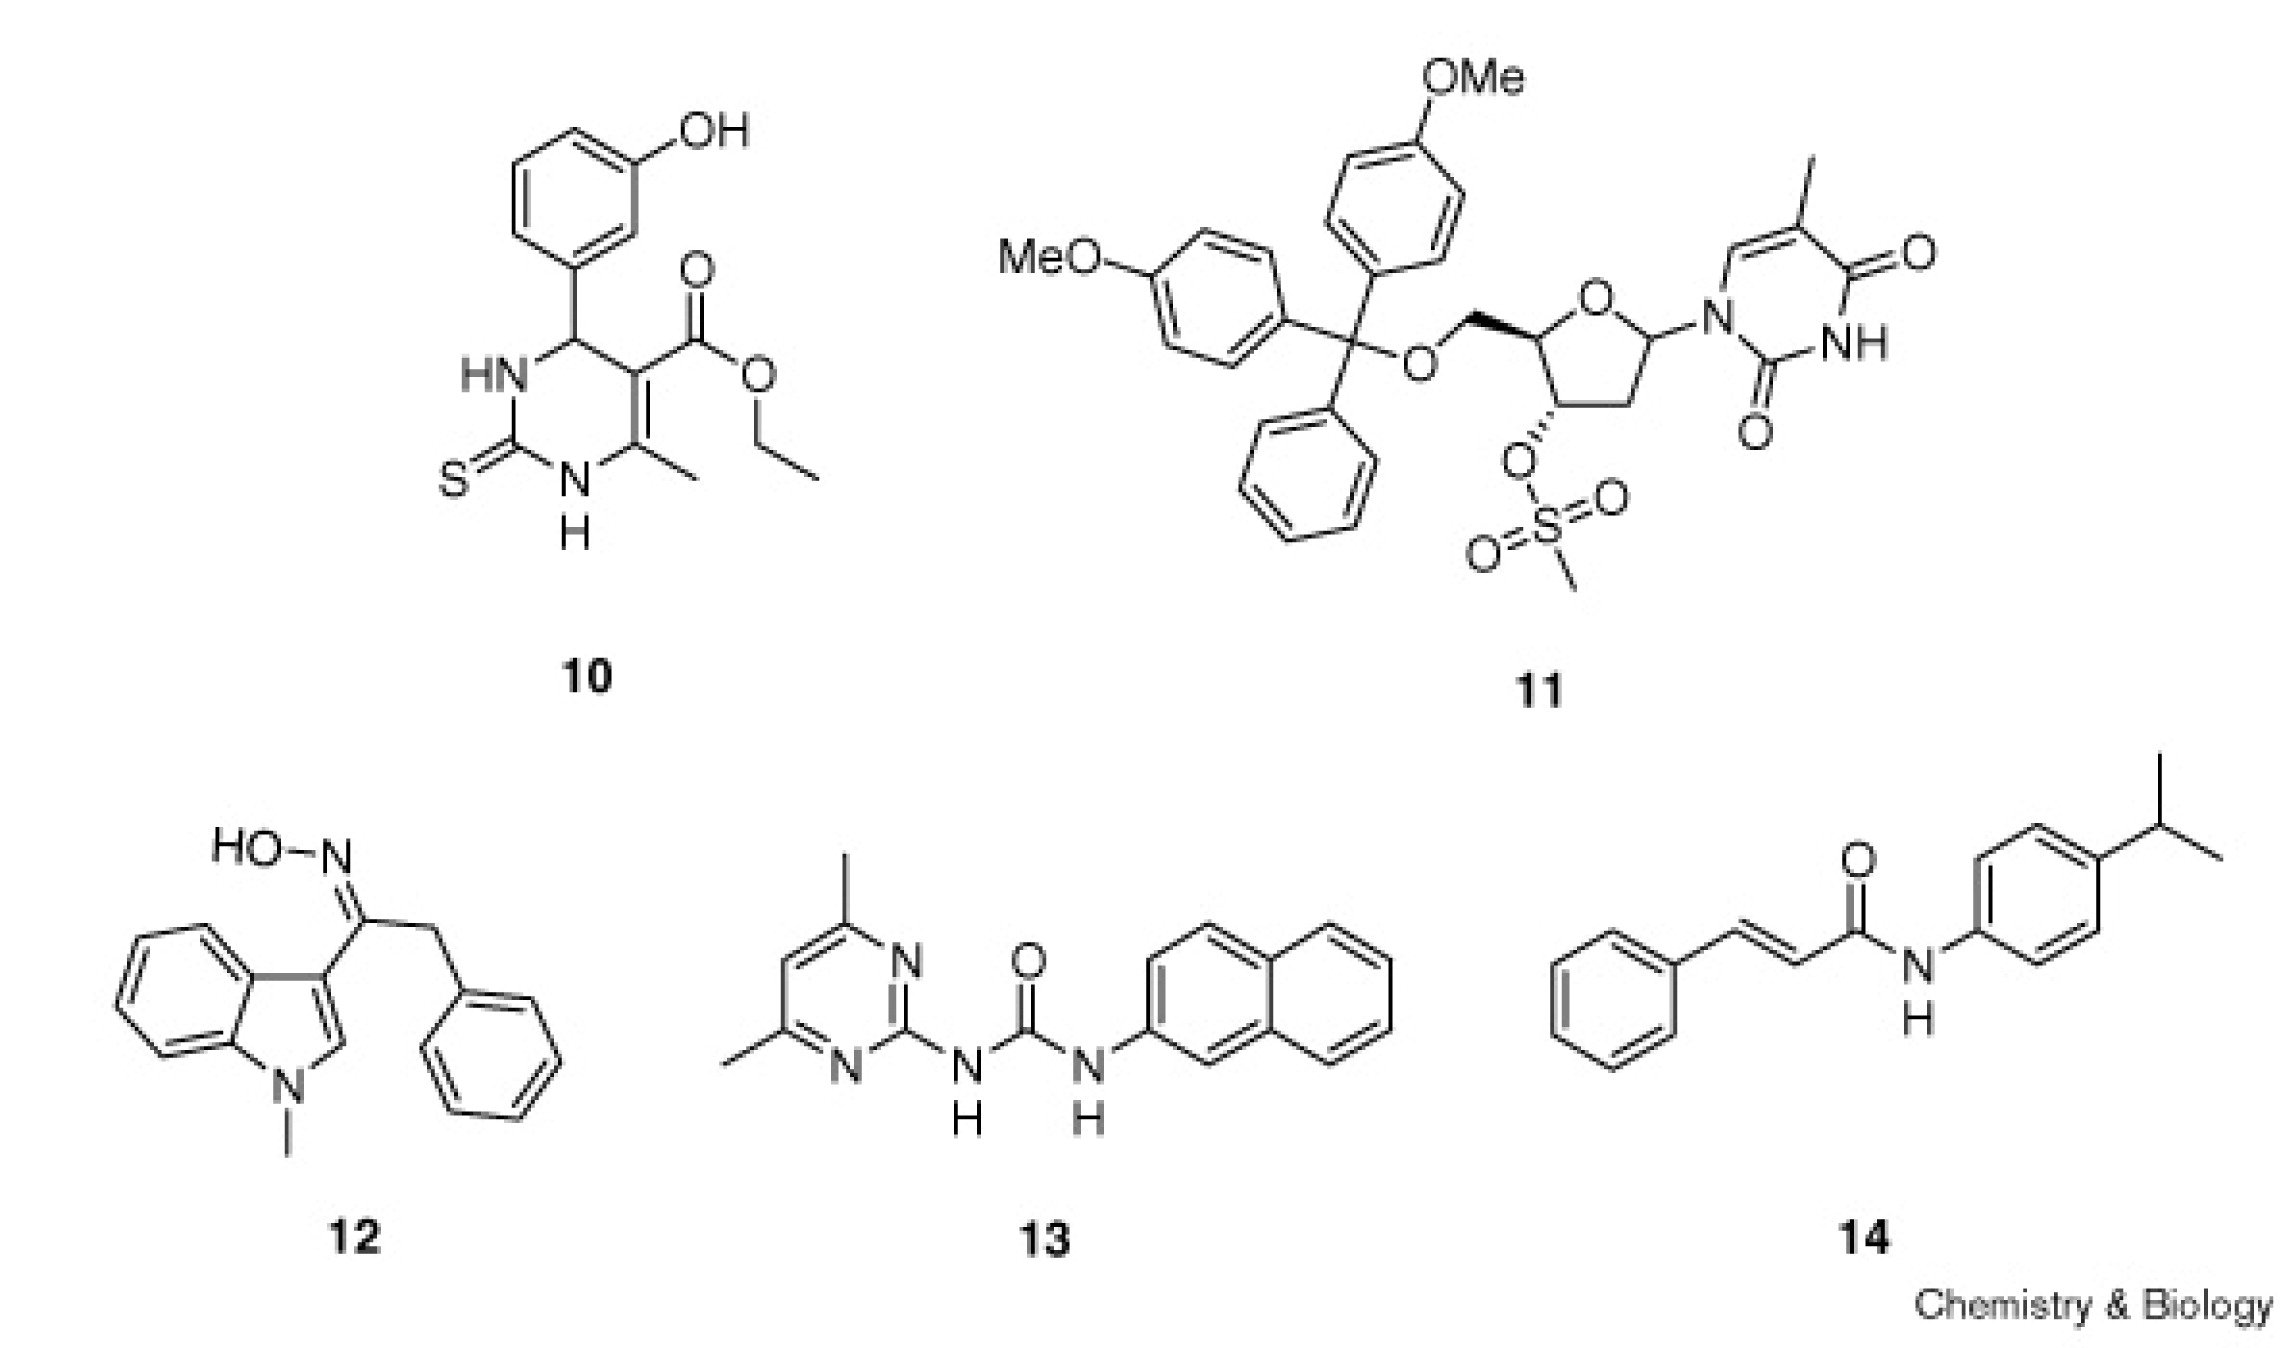 Dissecting Cellular Processes Using Small Molecules